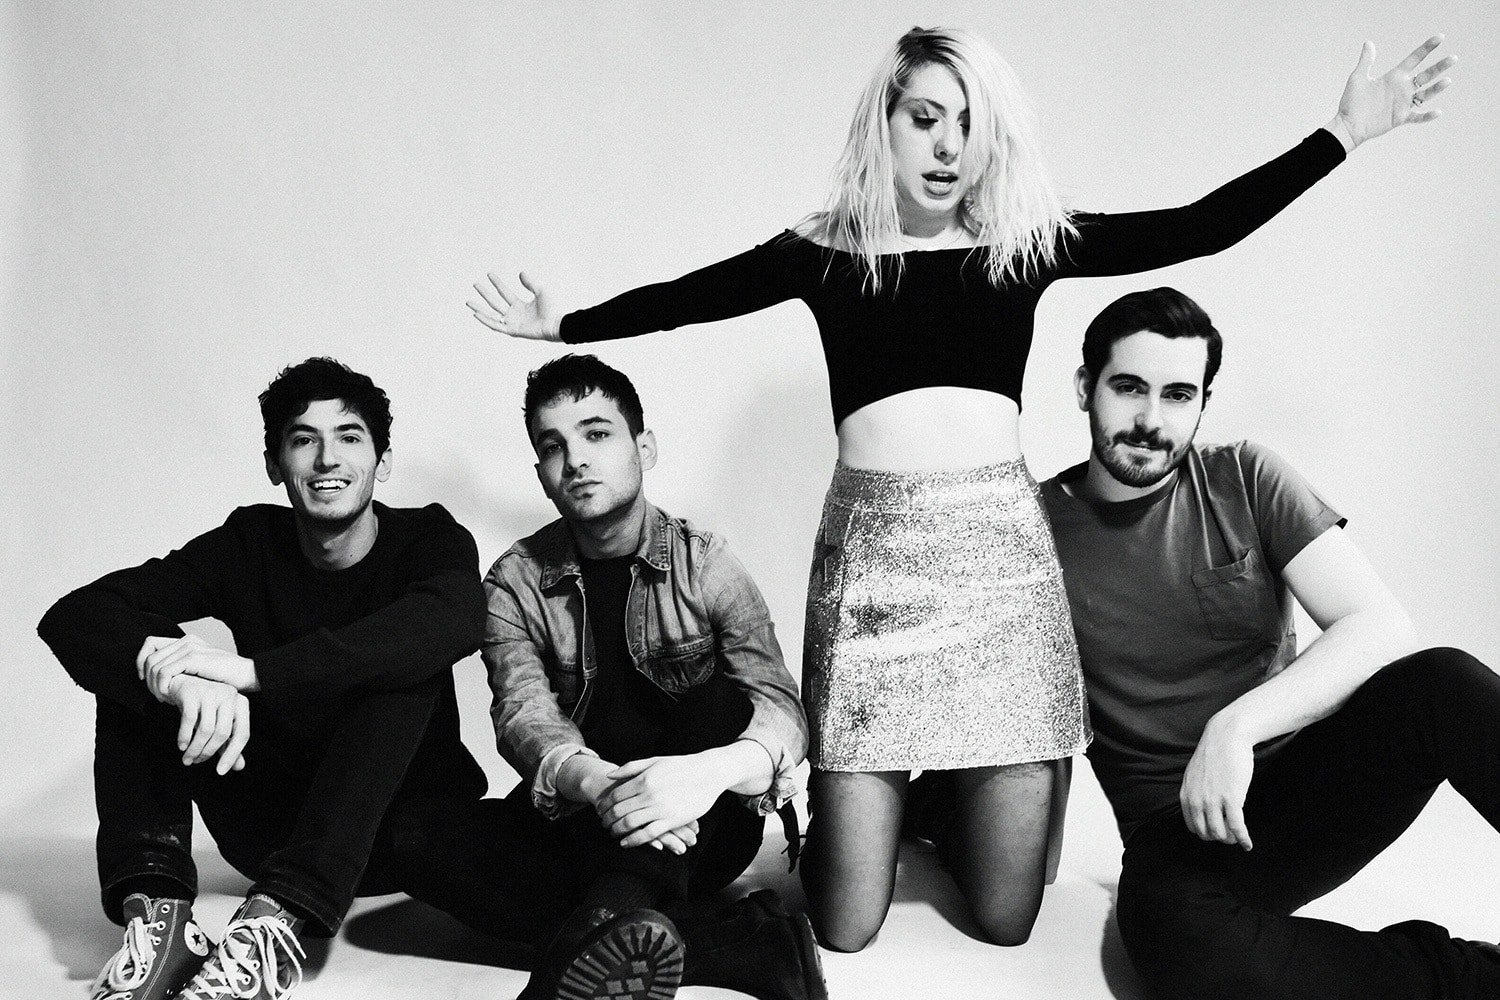 Charly Bliss brought the fun to 2017